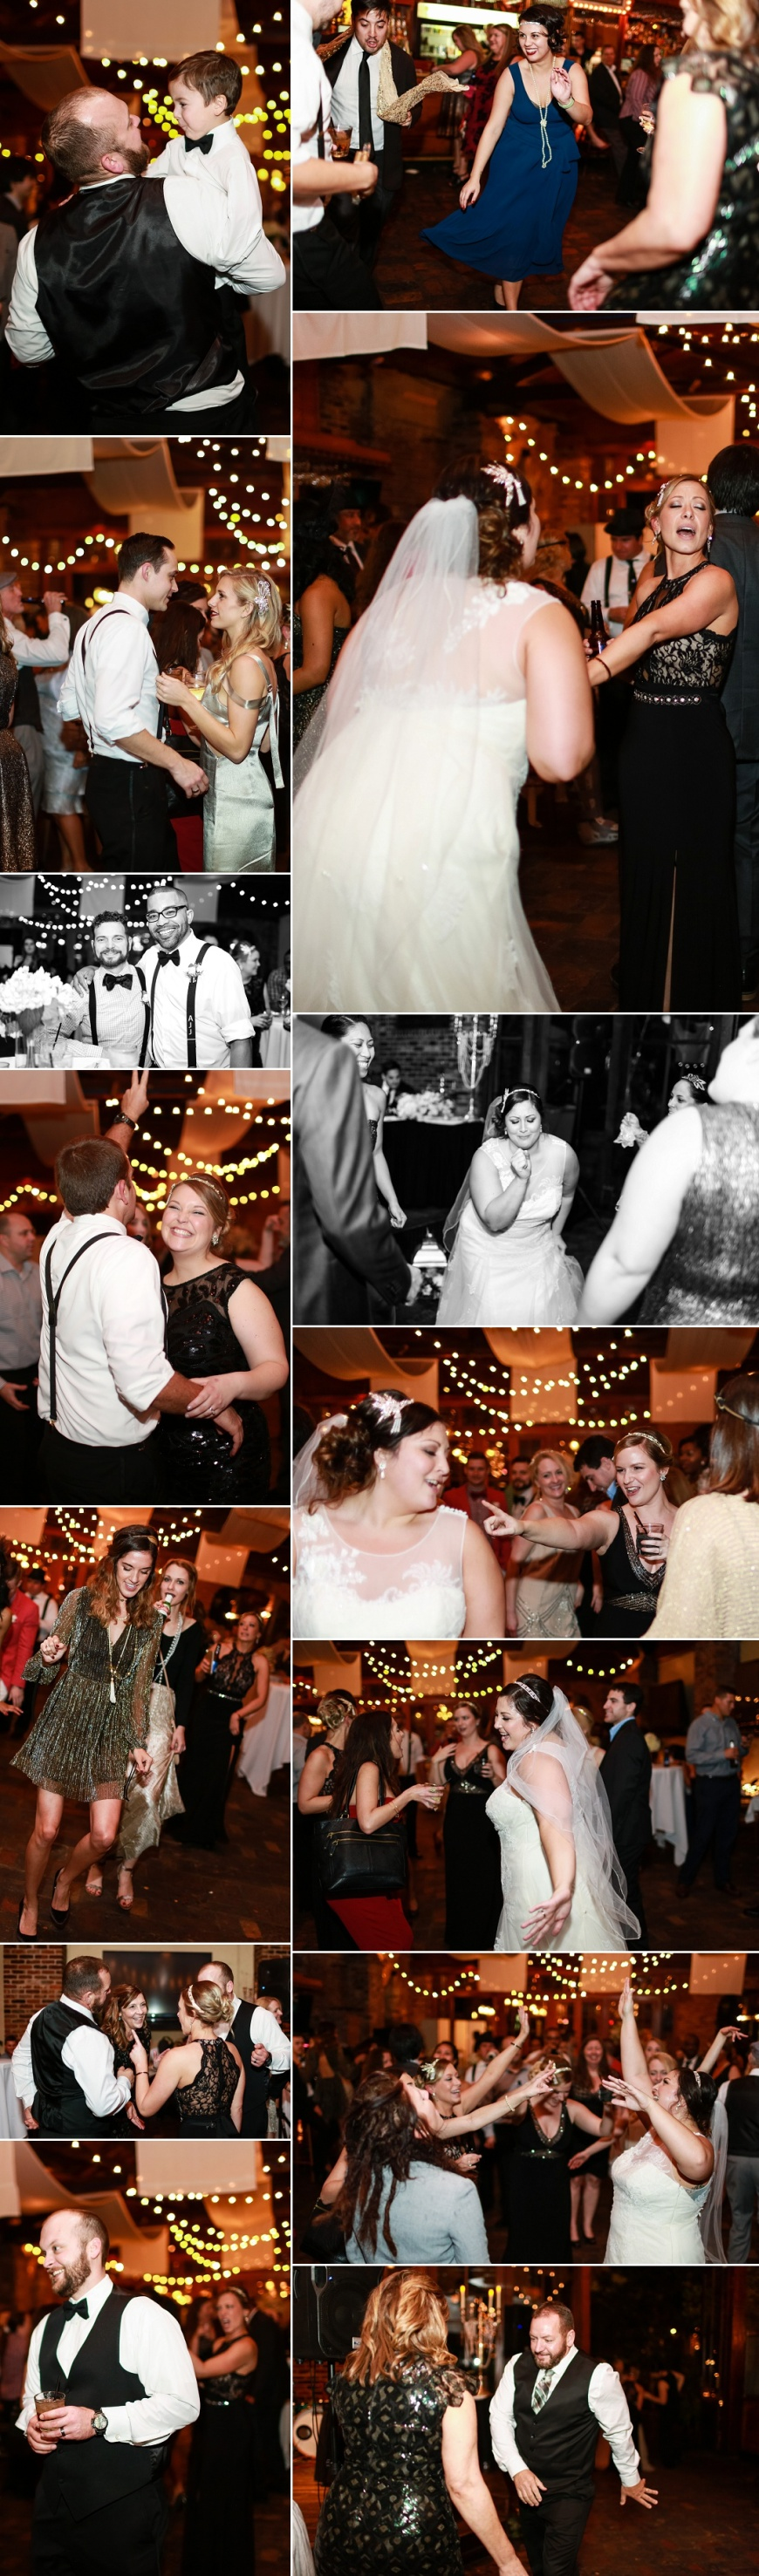 Seville-Quarter-Pensacola-Wedding-Photographer_1093.jpg